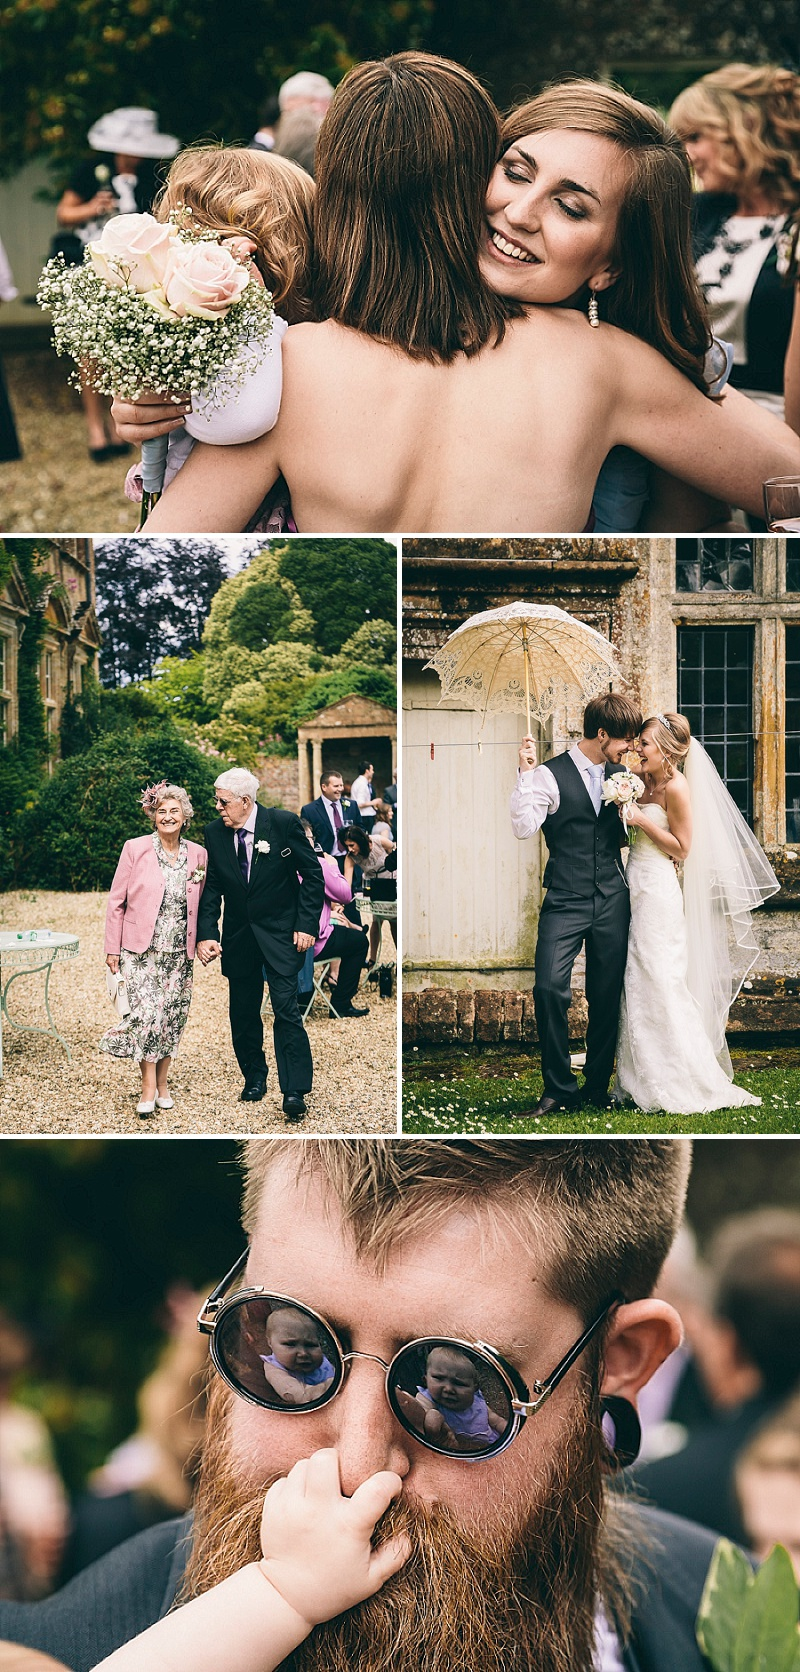 Elegant Wedding At Brympton House In Somerset With A Duck Egg Blue Colour Scheme With Bride In Gown From Prima Moda And Groom In Suit From Moss With Images From How Photography 7